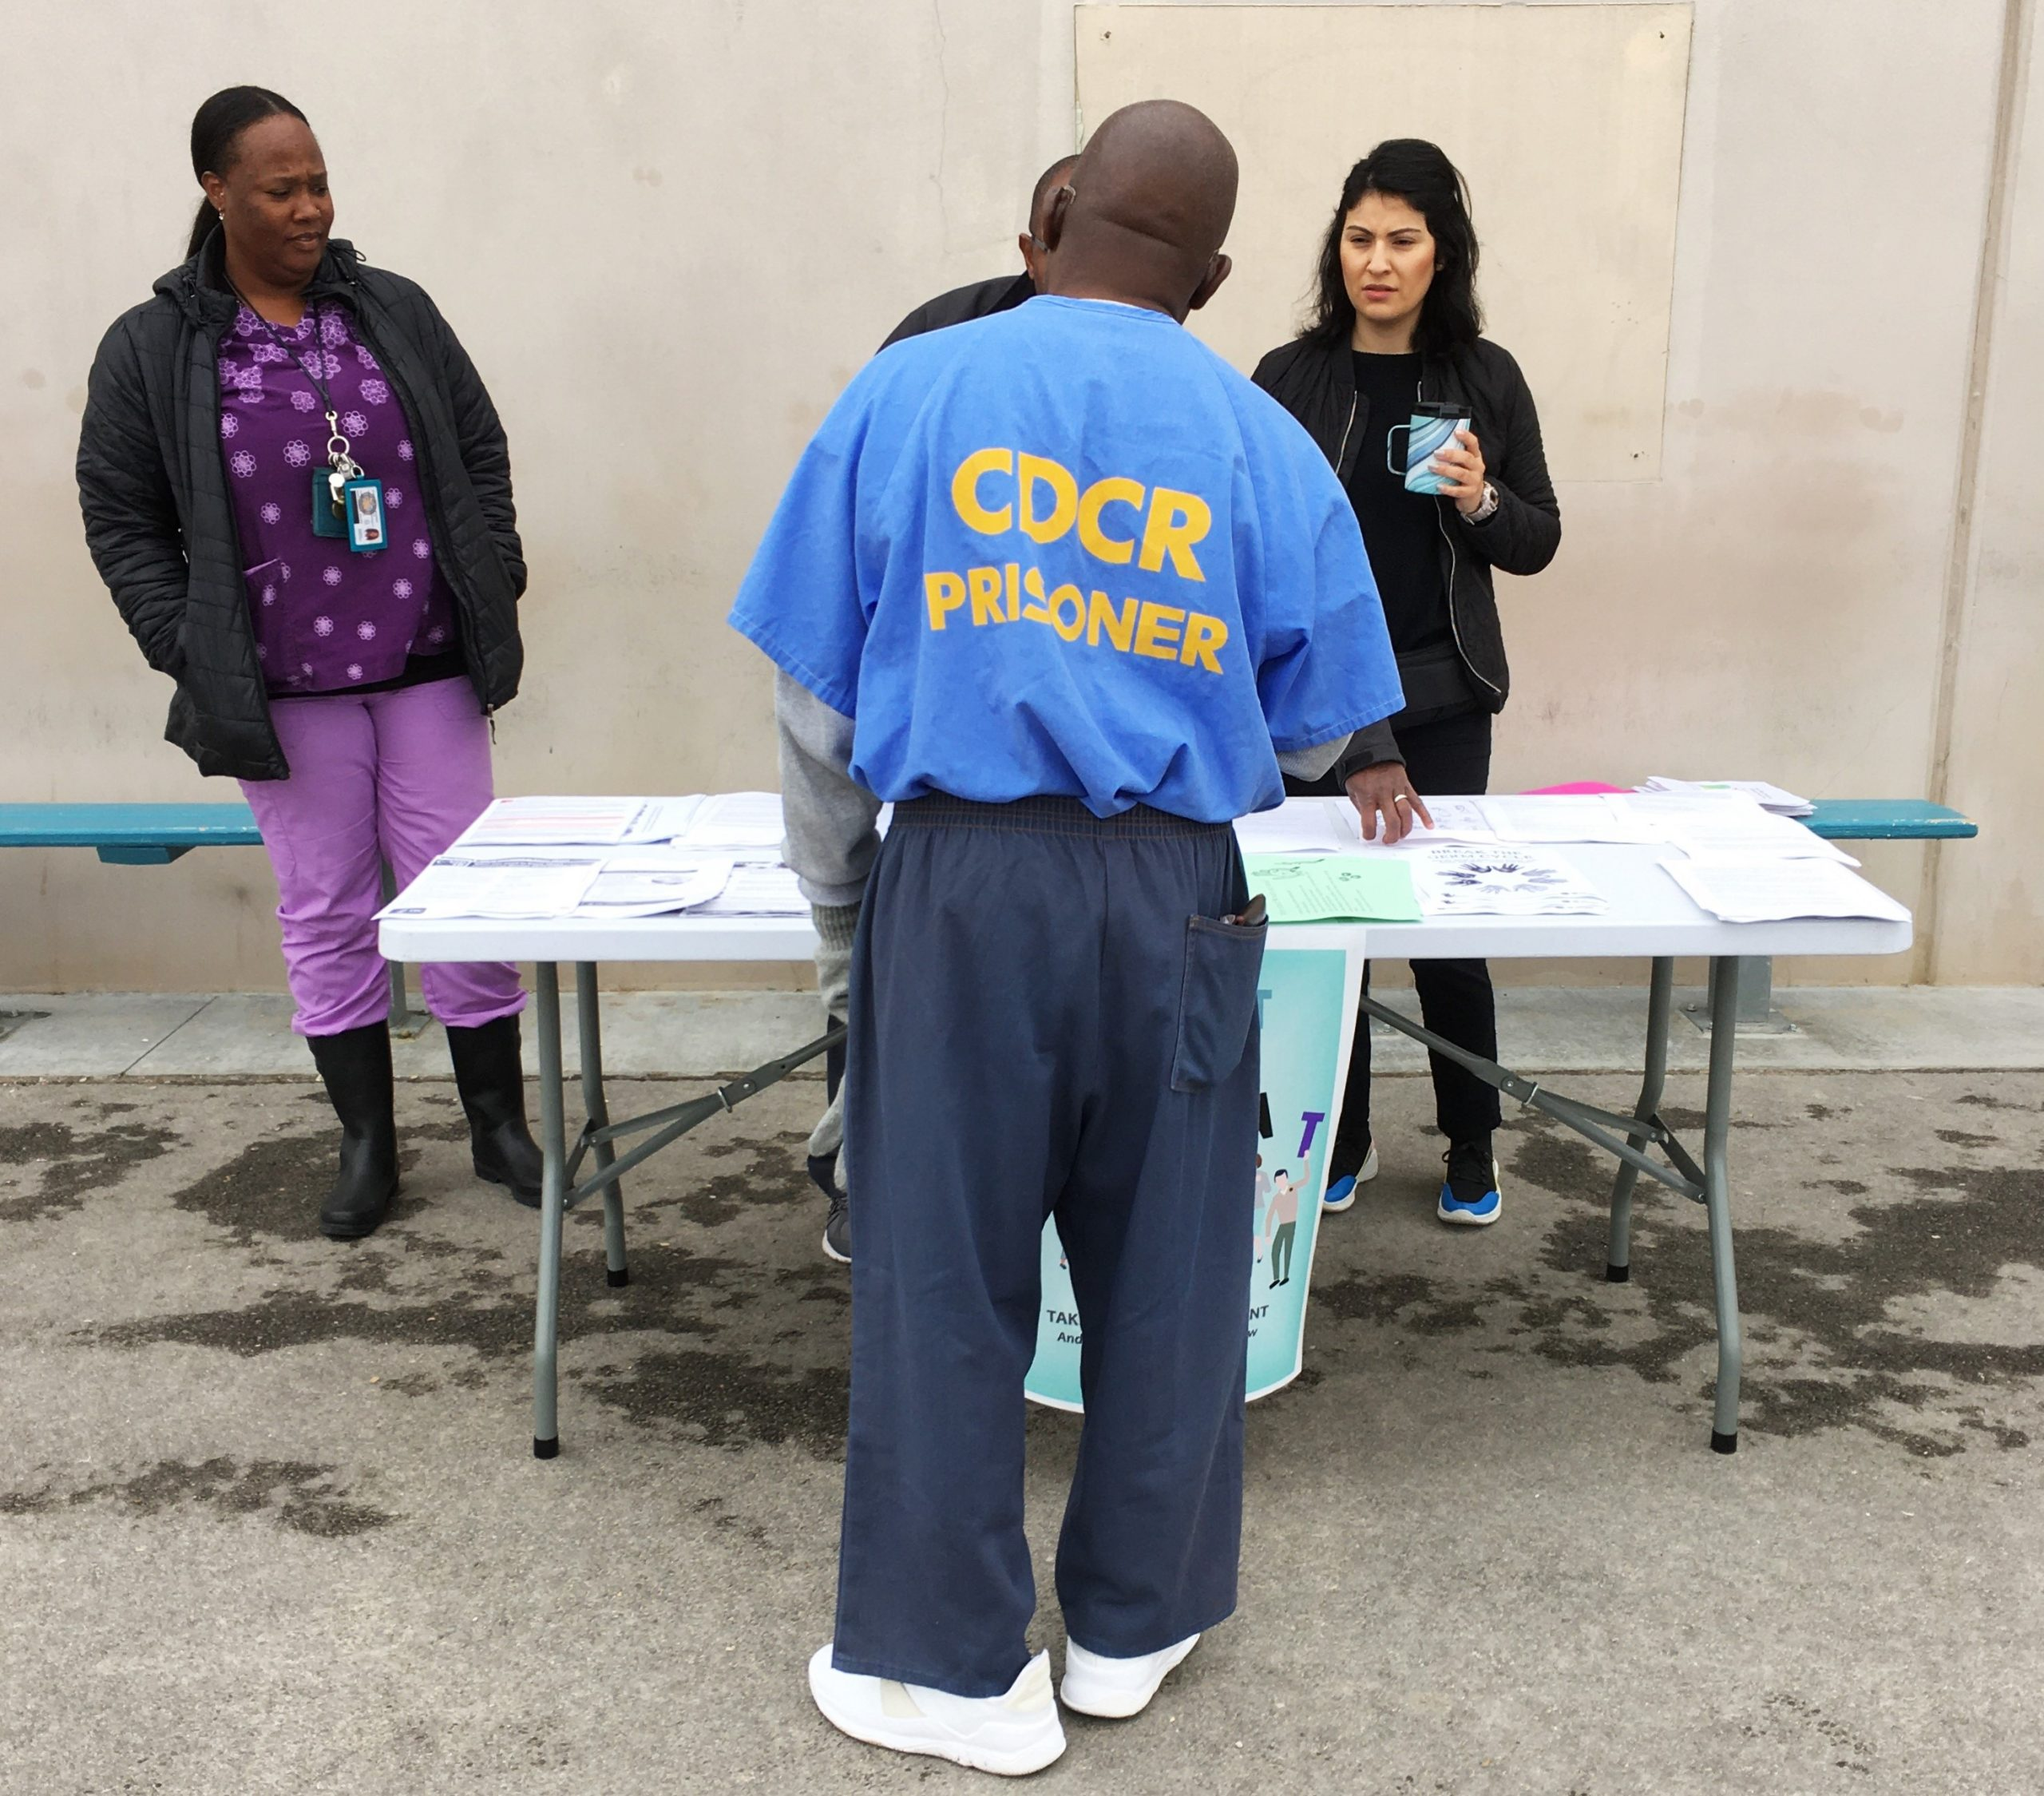 Prison inmate speaks to three people at an information booth.